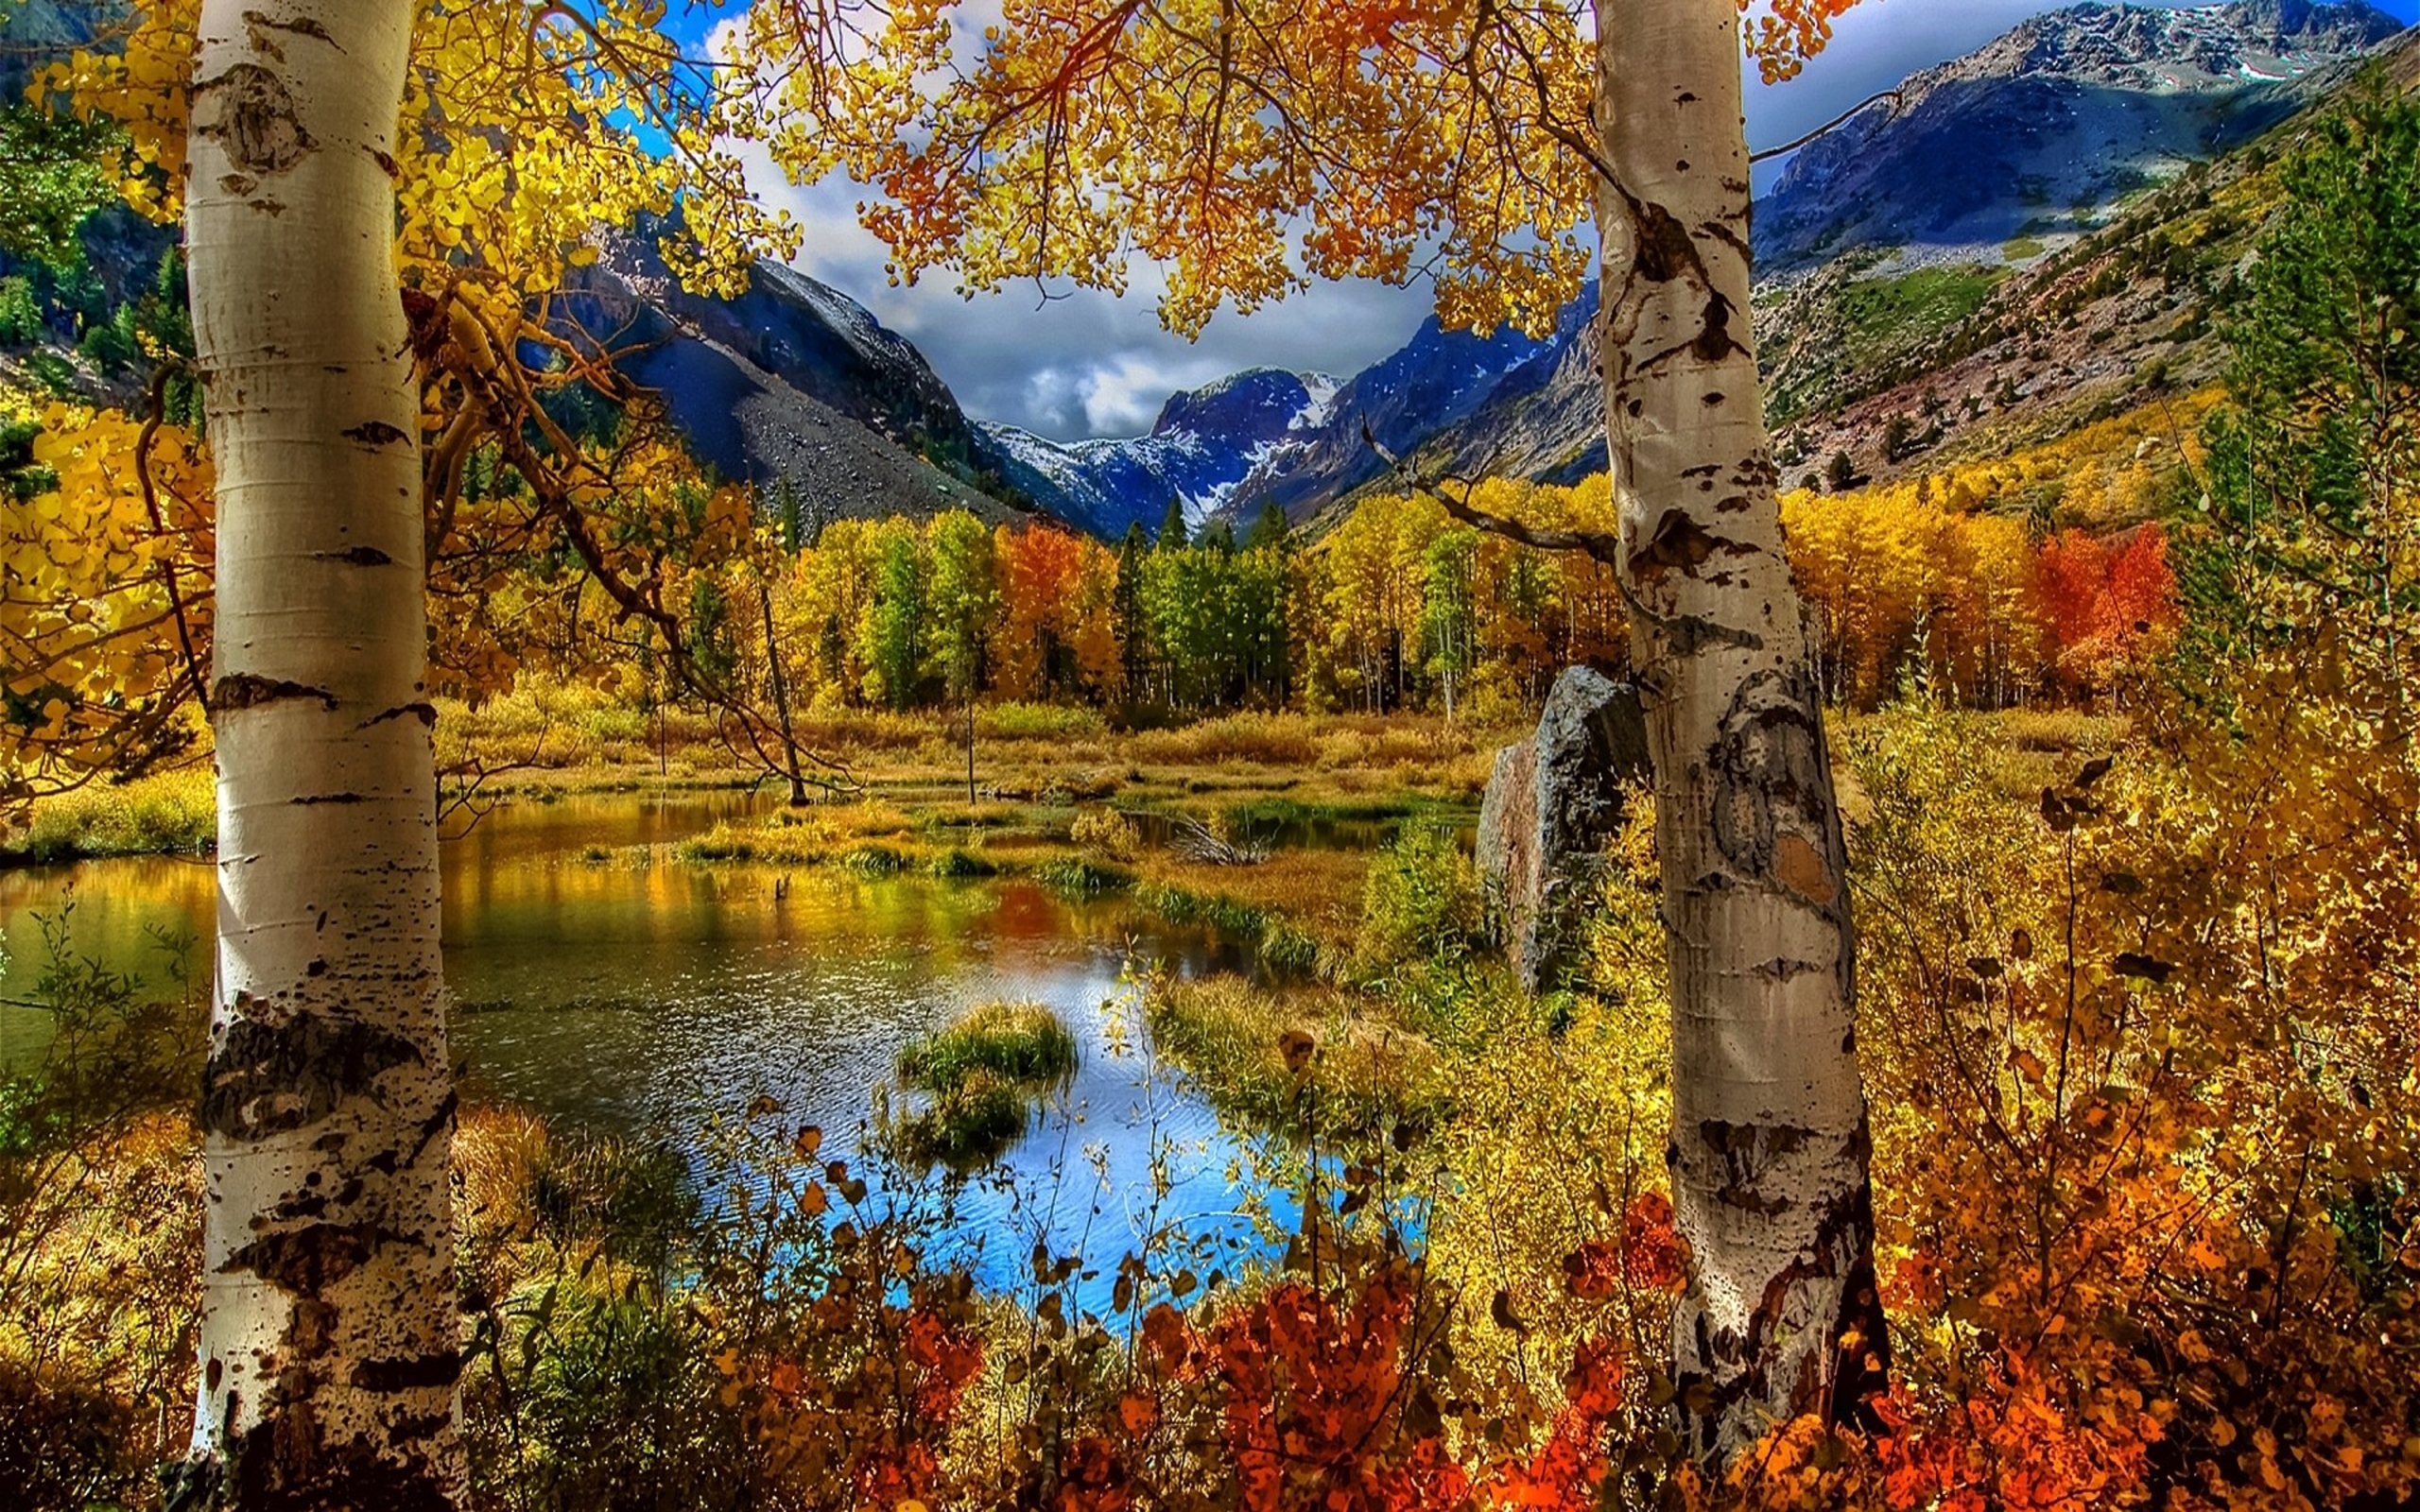 amazing nature fall hd wallpaper download - download free hd wallpapers